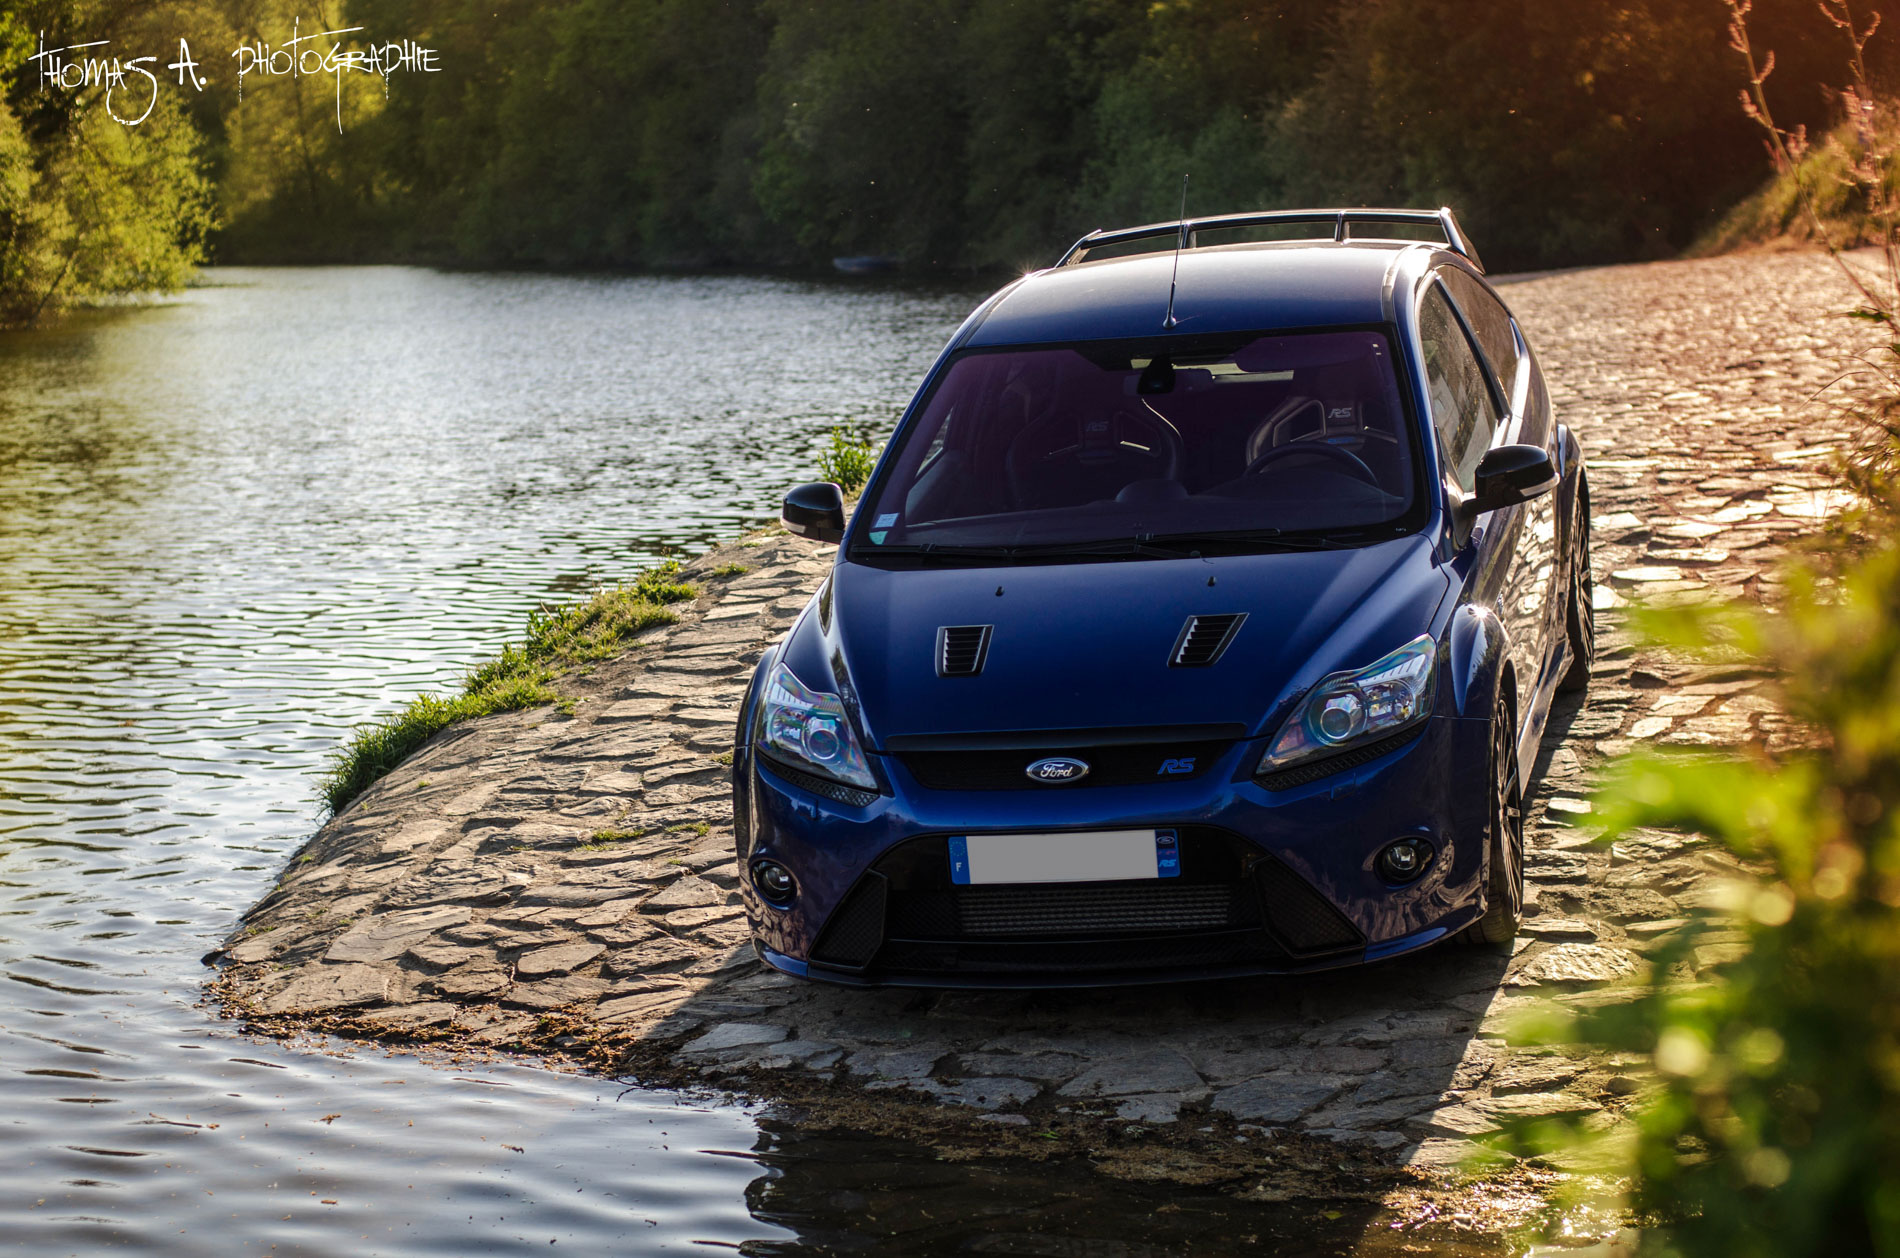 Ford Focus Rs Mk2 Nantes Vignoble (5)